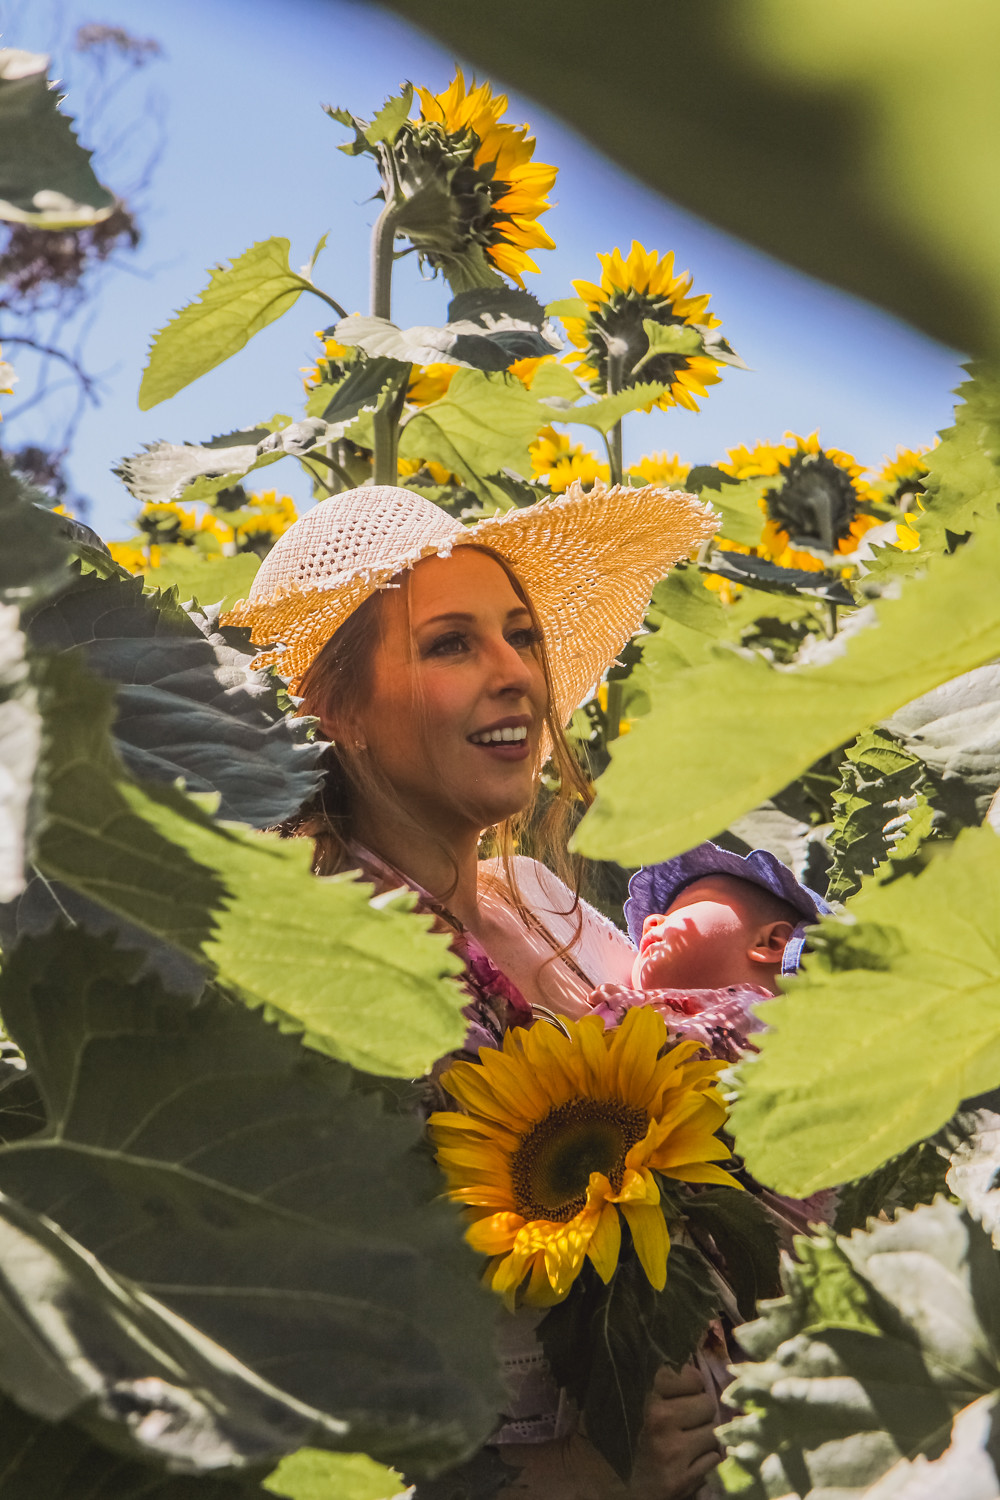 Goldfields Girl and sleeping baby hidden amongst sunflowers